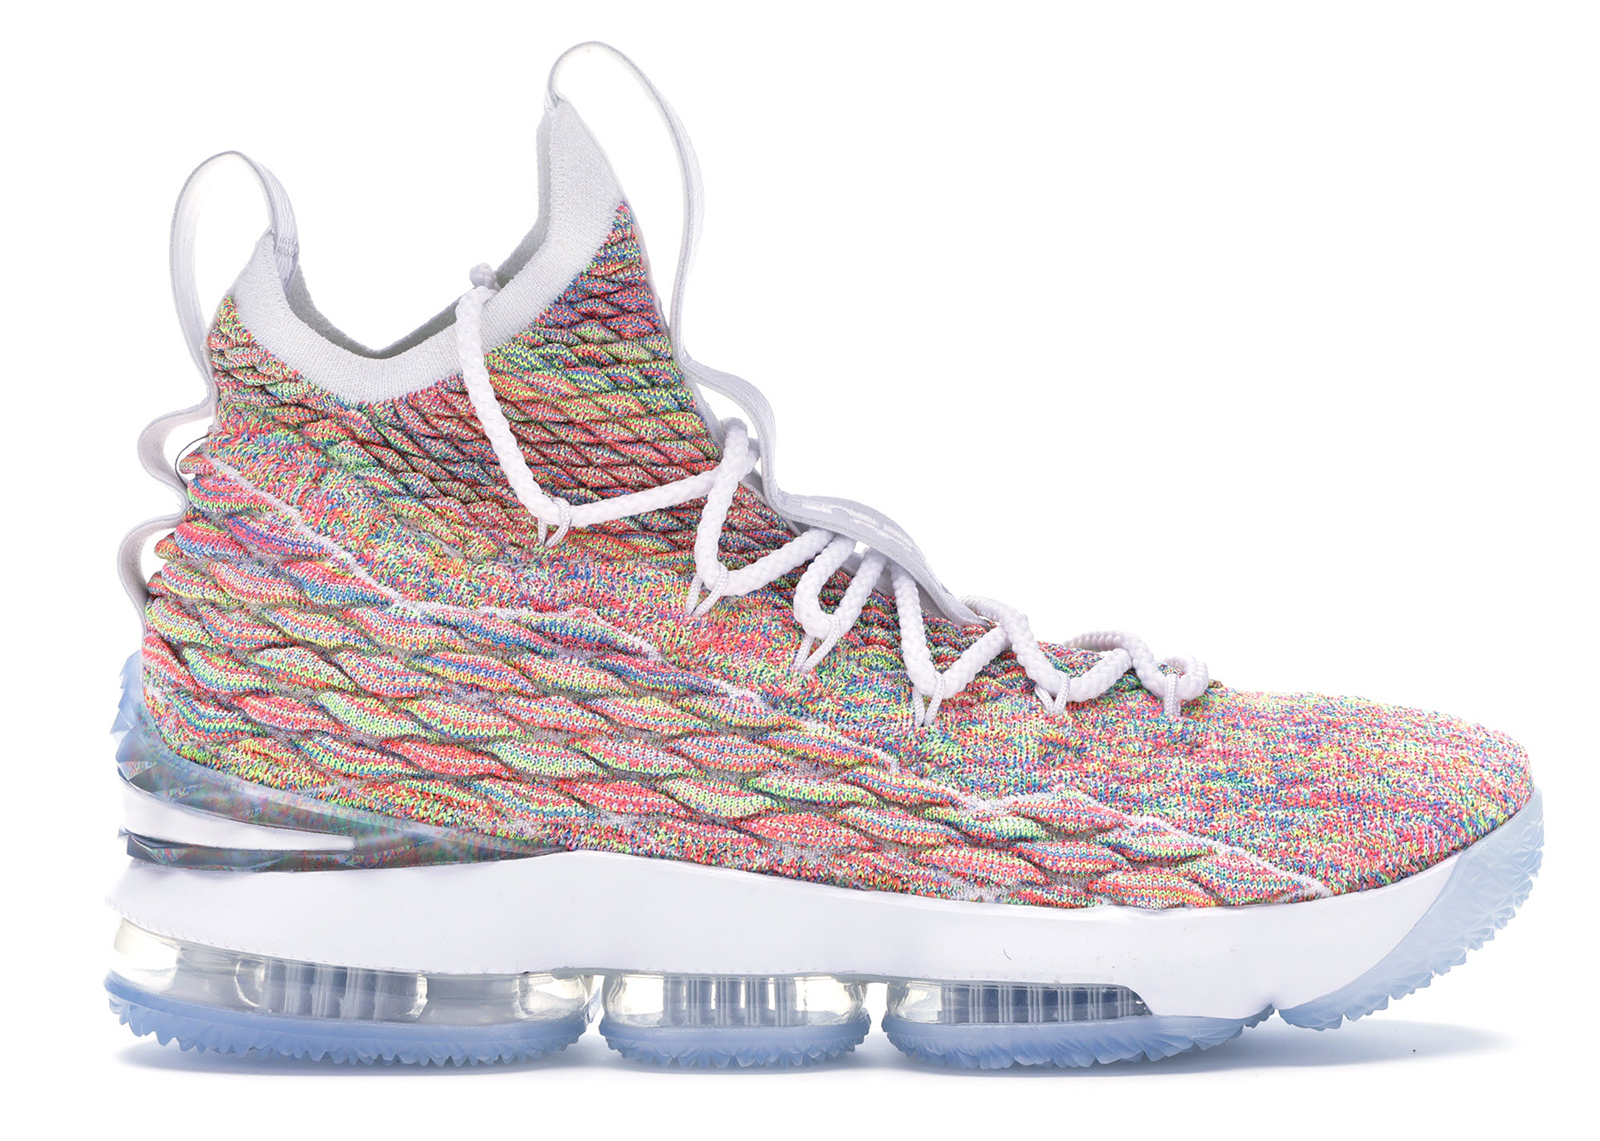 Lebron 15 - All Sizes & Colorways at StockX